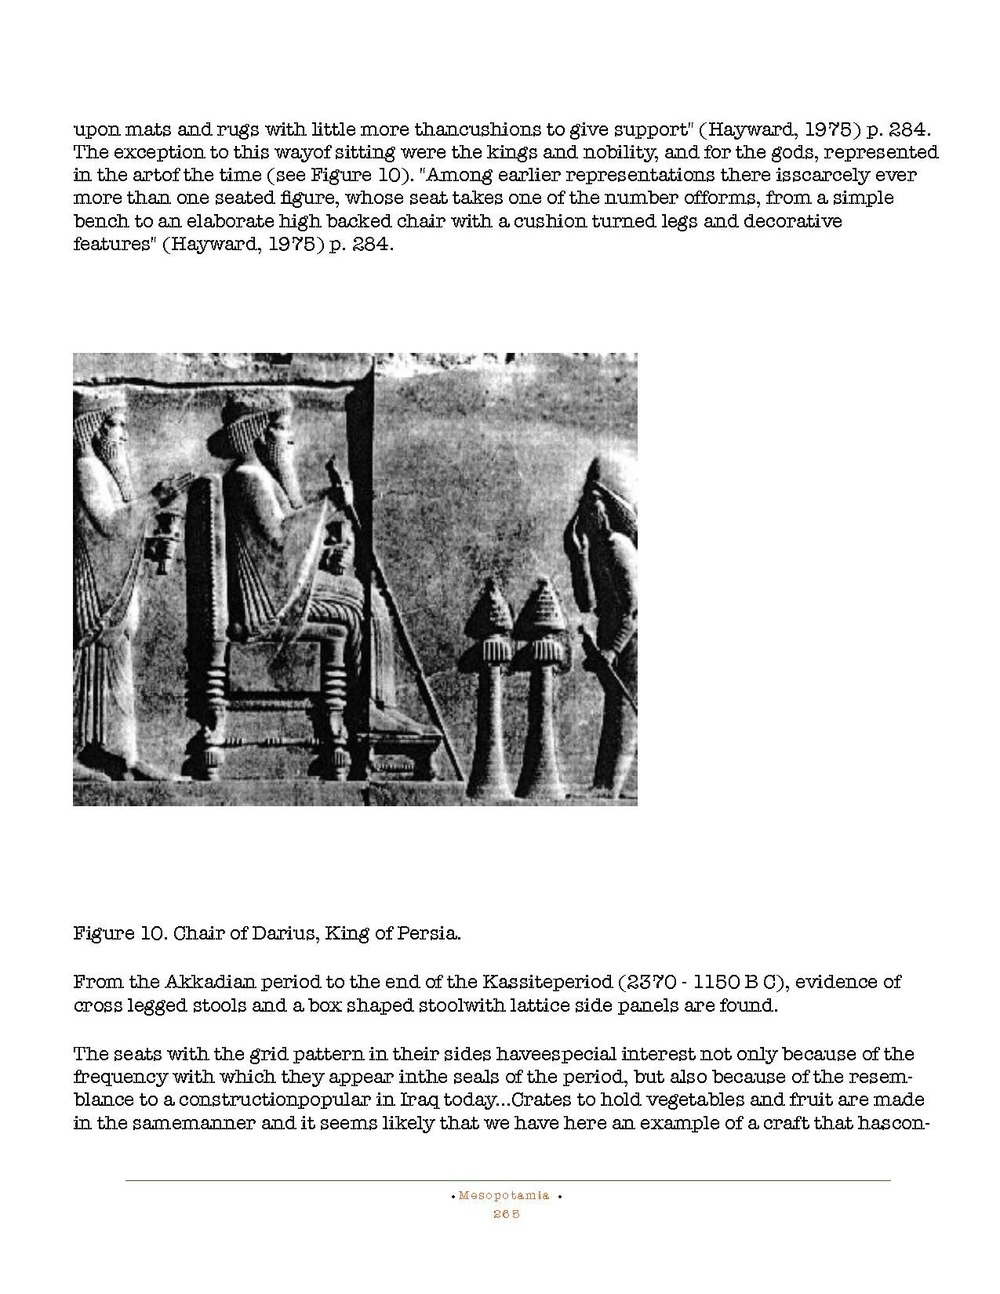 HOCE- Fertile Crescent Notes_Page_265.jpg